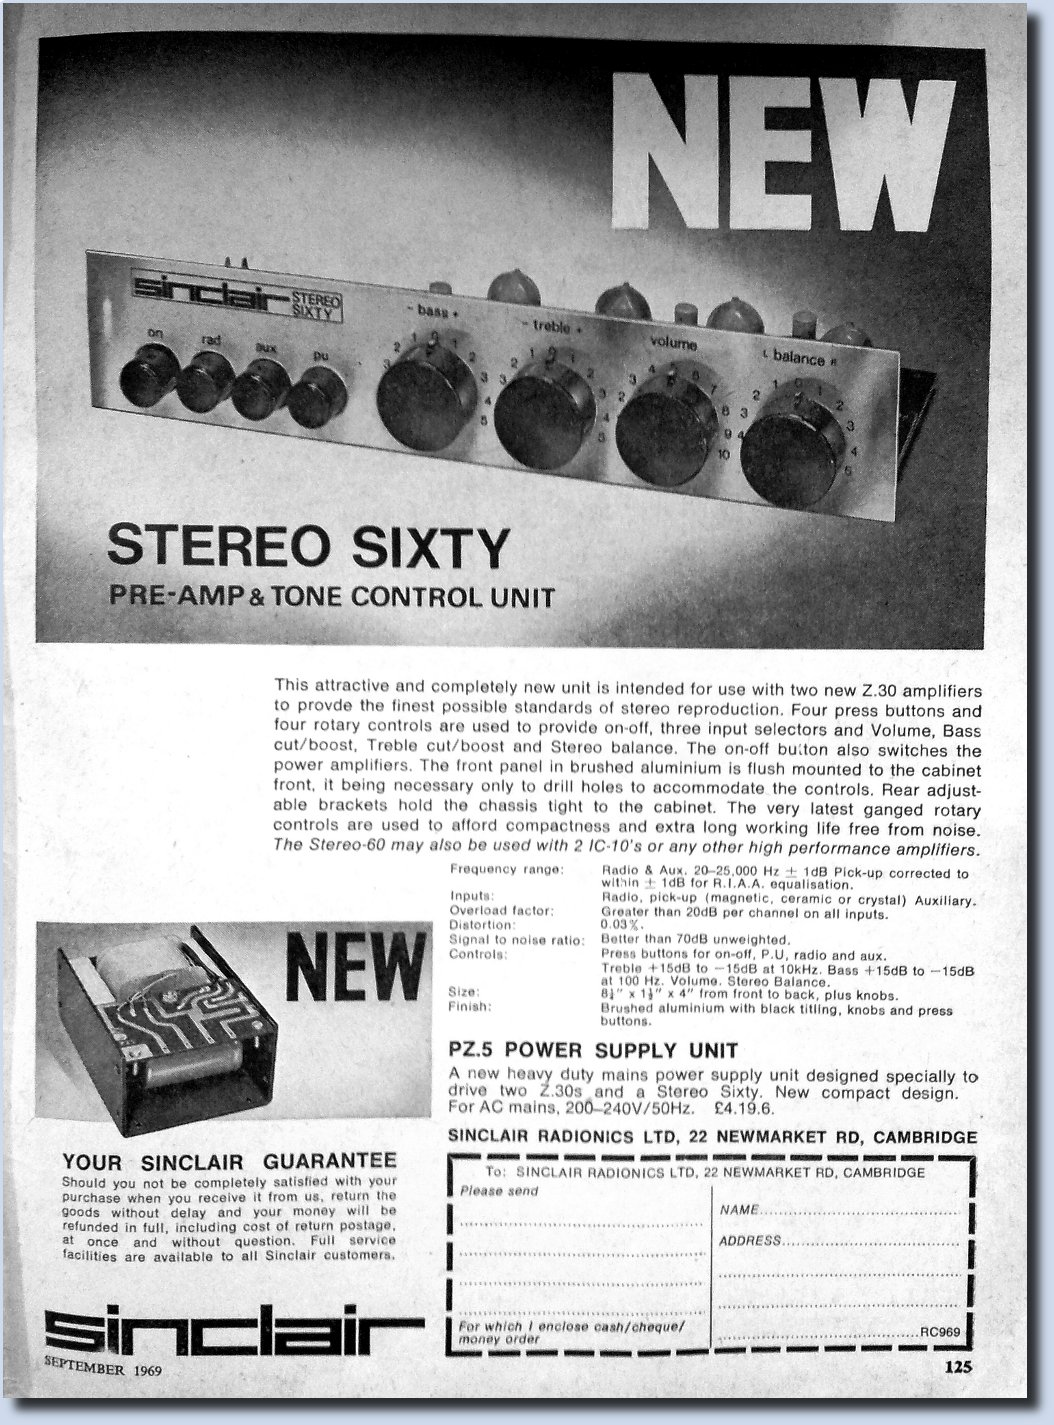 Image of Sinclair Stereo Sixty